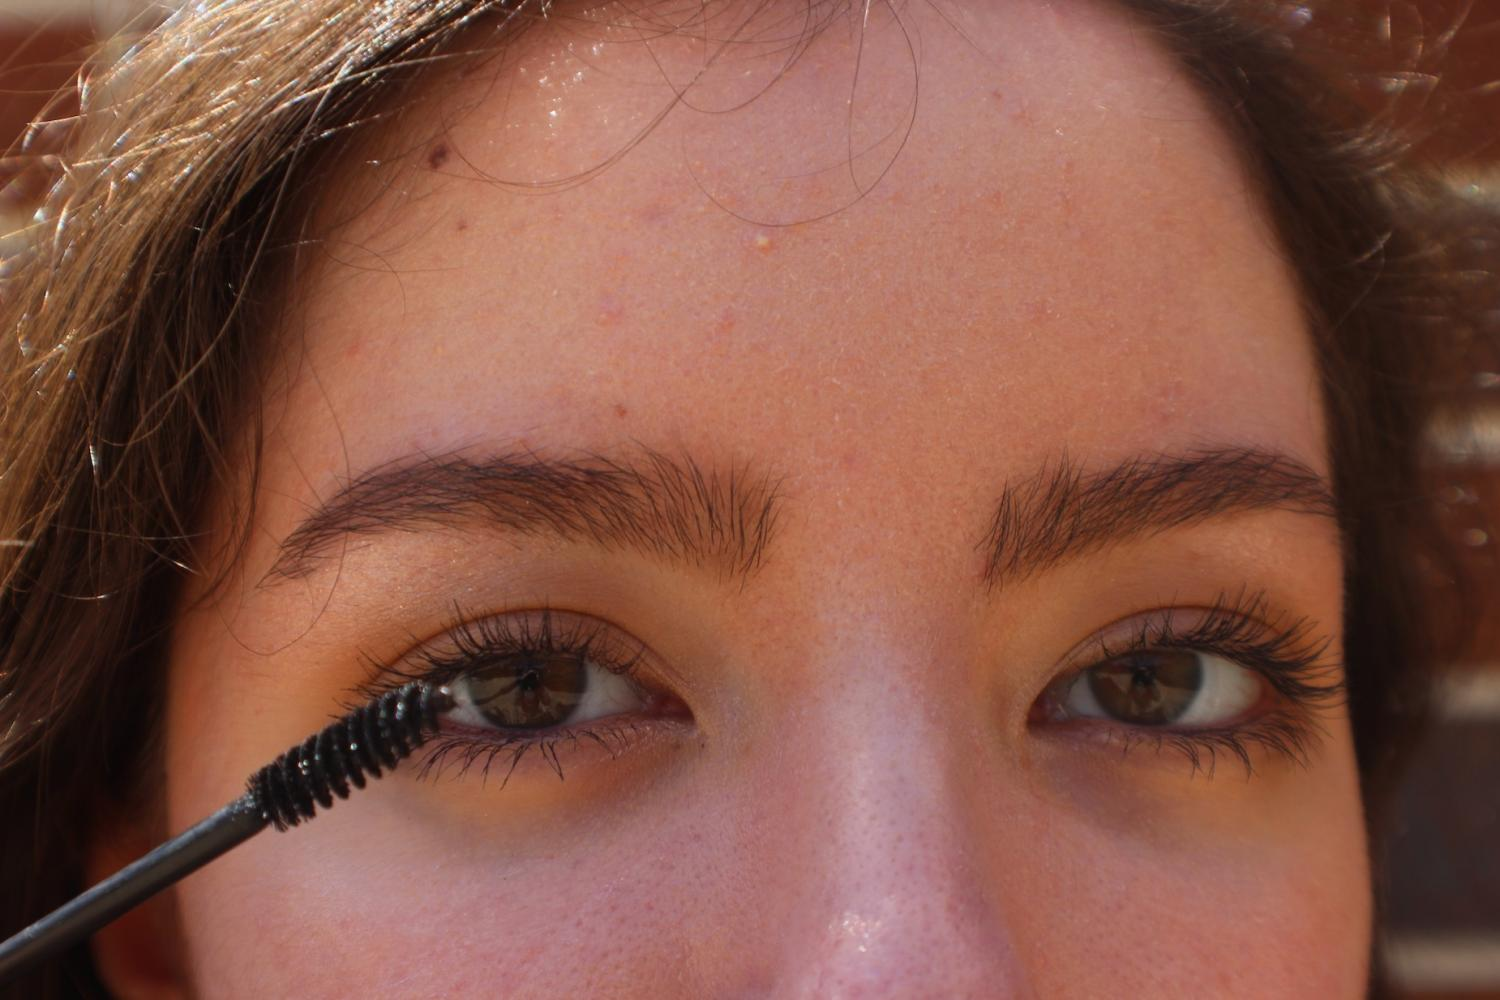 A student experiments with mascara, using the latest beauty trend.